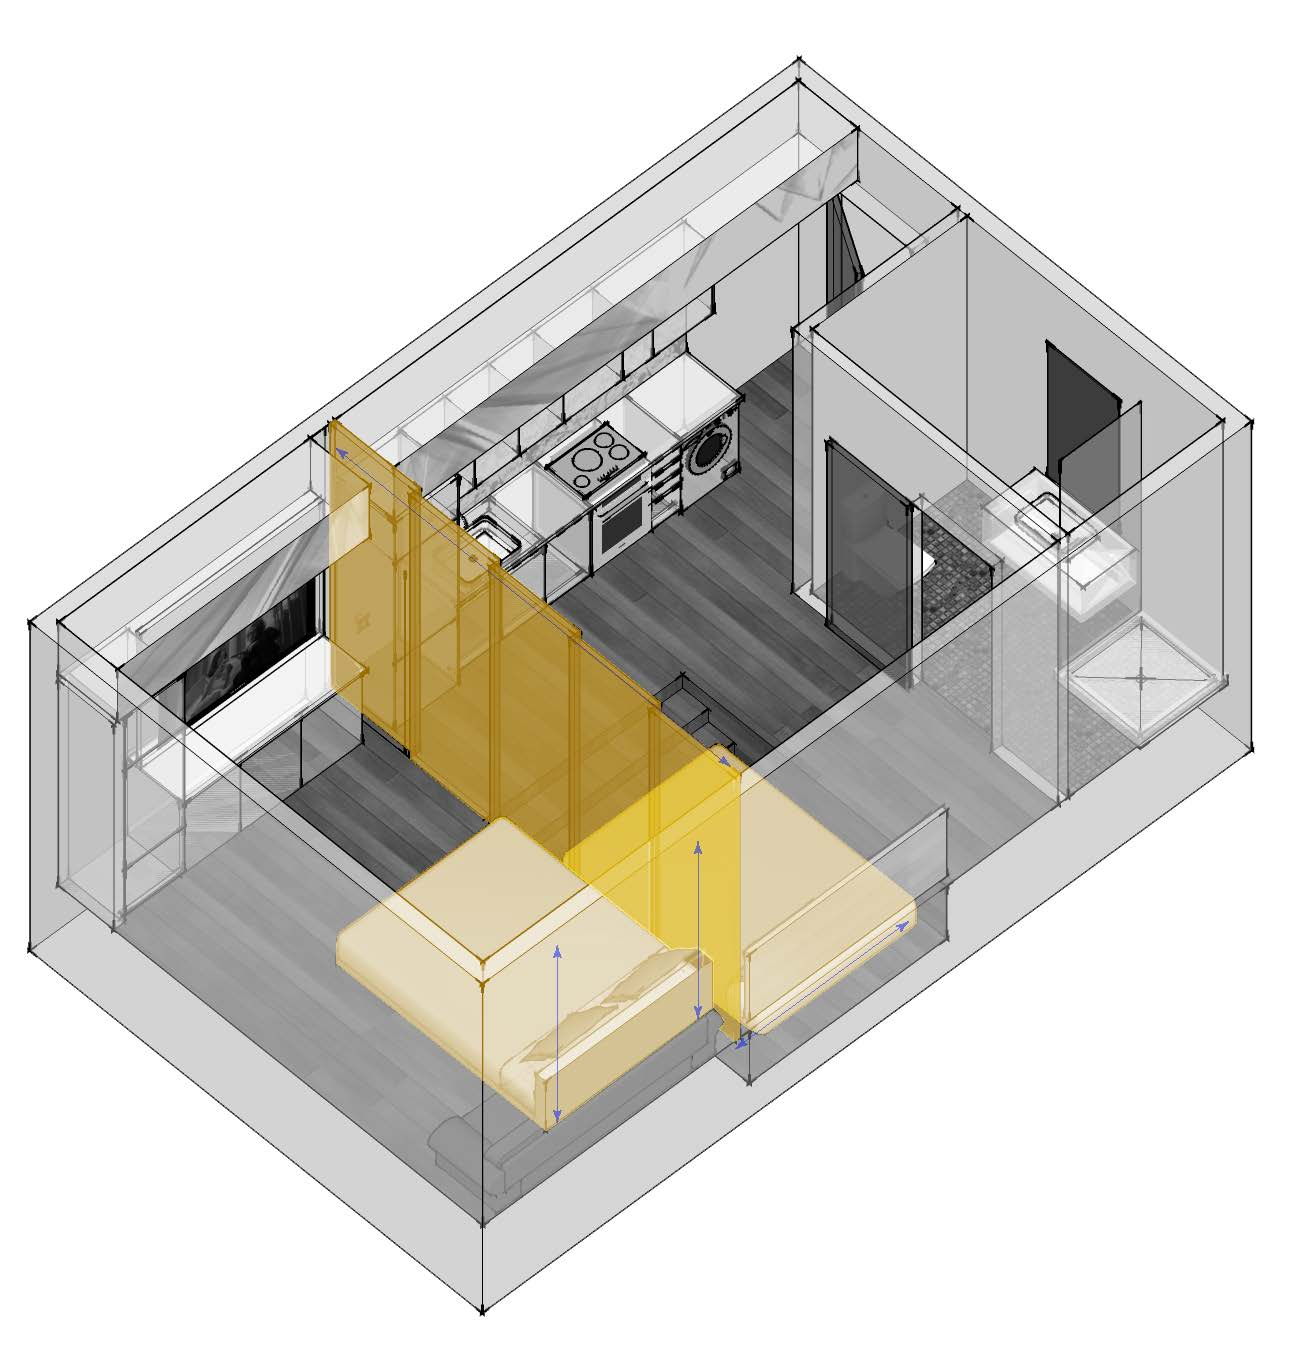 Pull down bed from the ceiling, and pull out bed from under the floor can be deployed when it's sleeping time. A series of collapsible panel can be pull out of its pocket to separate the two spaces. Drawings by Andrew Lafosse.